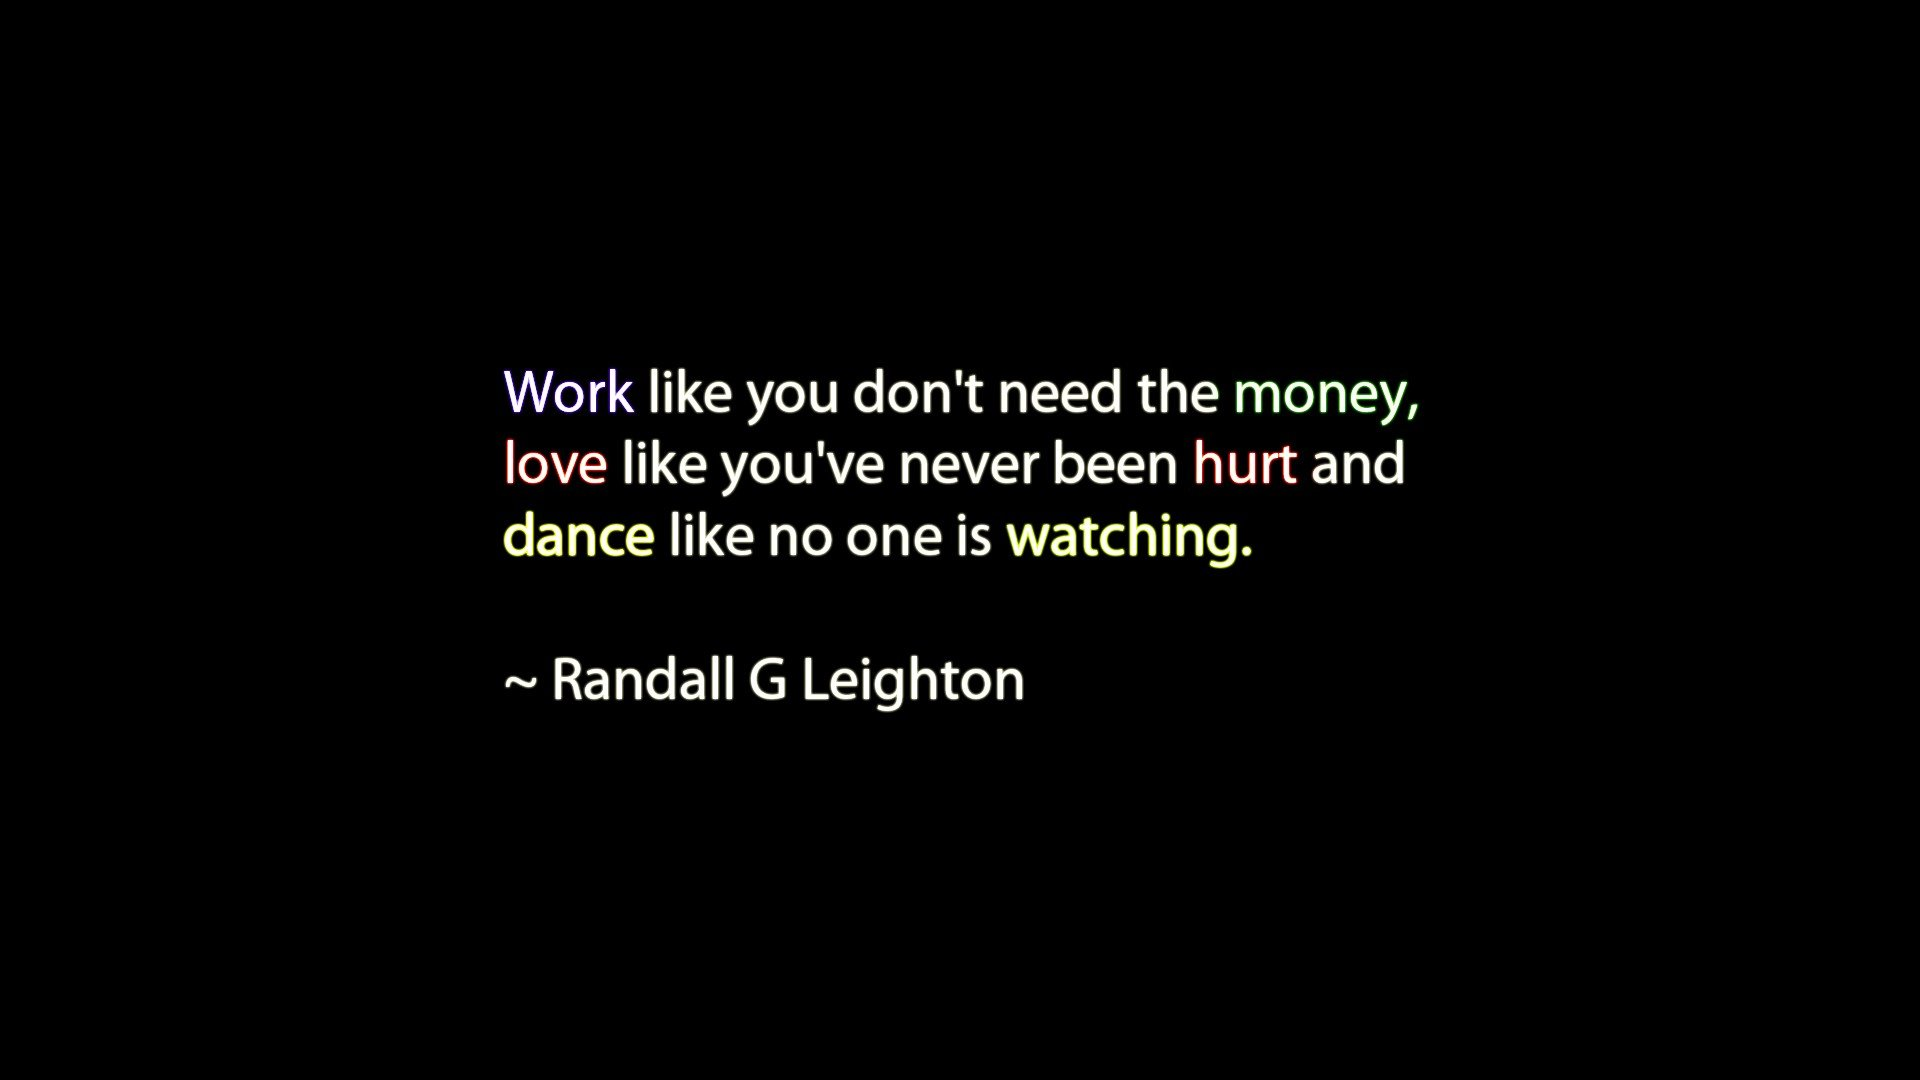 Quotes About Hurt Work Love Money Quotes Dance Hurt Wallpaper  1920X1080  237350